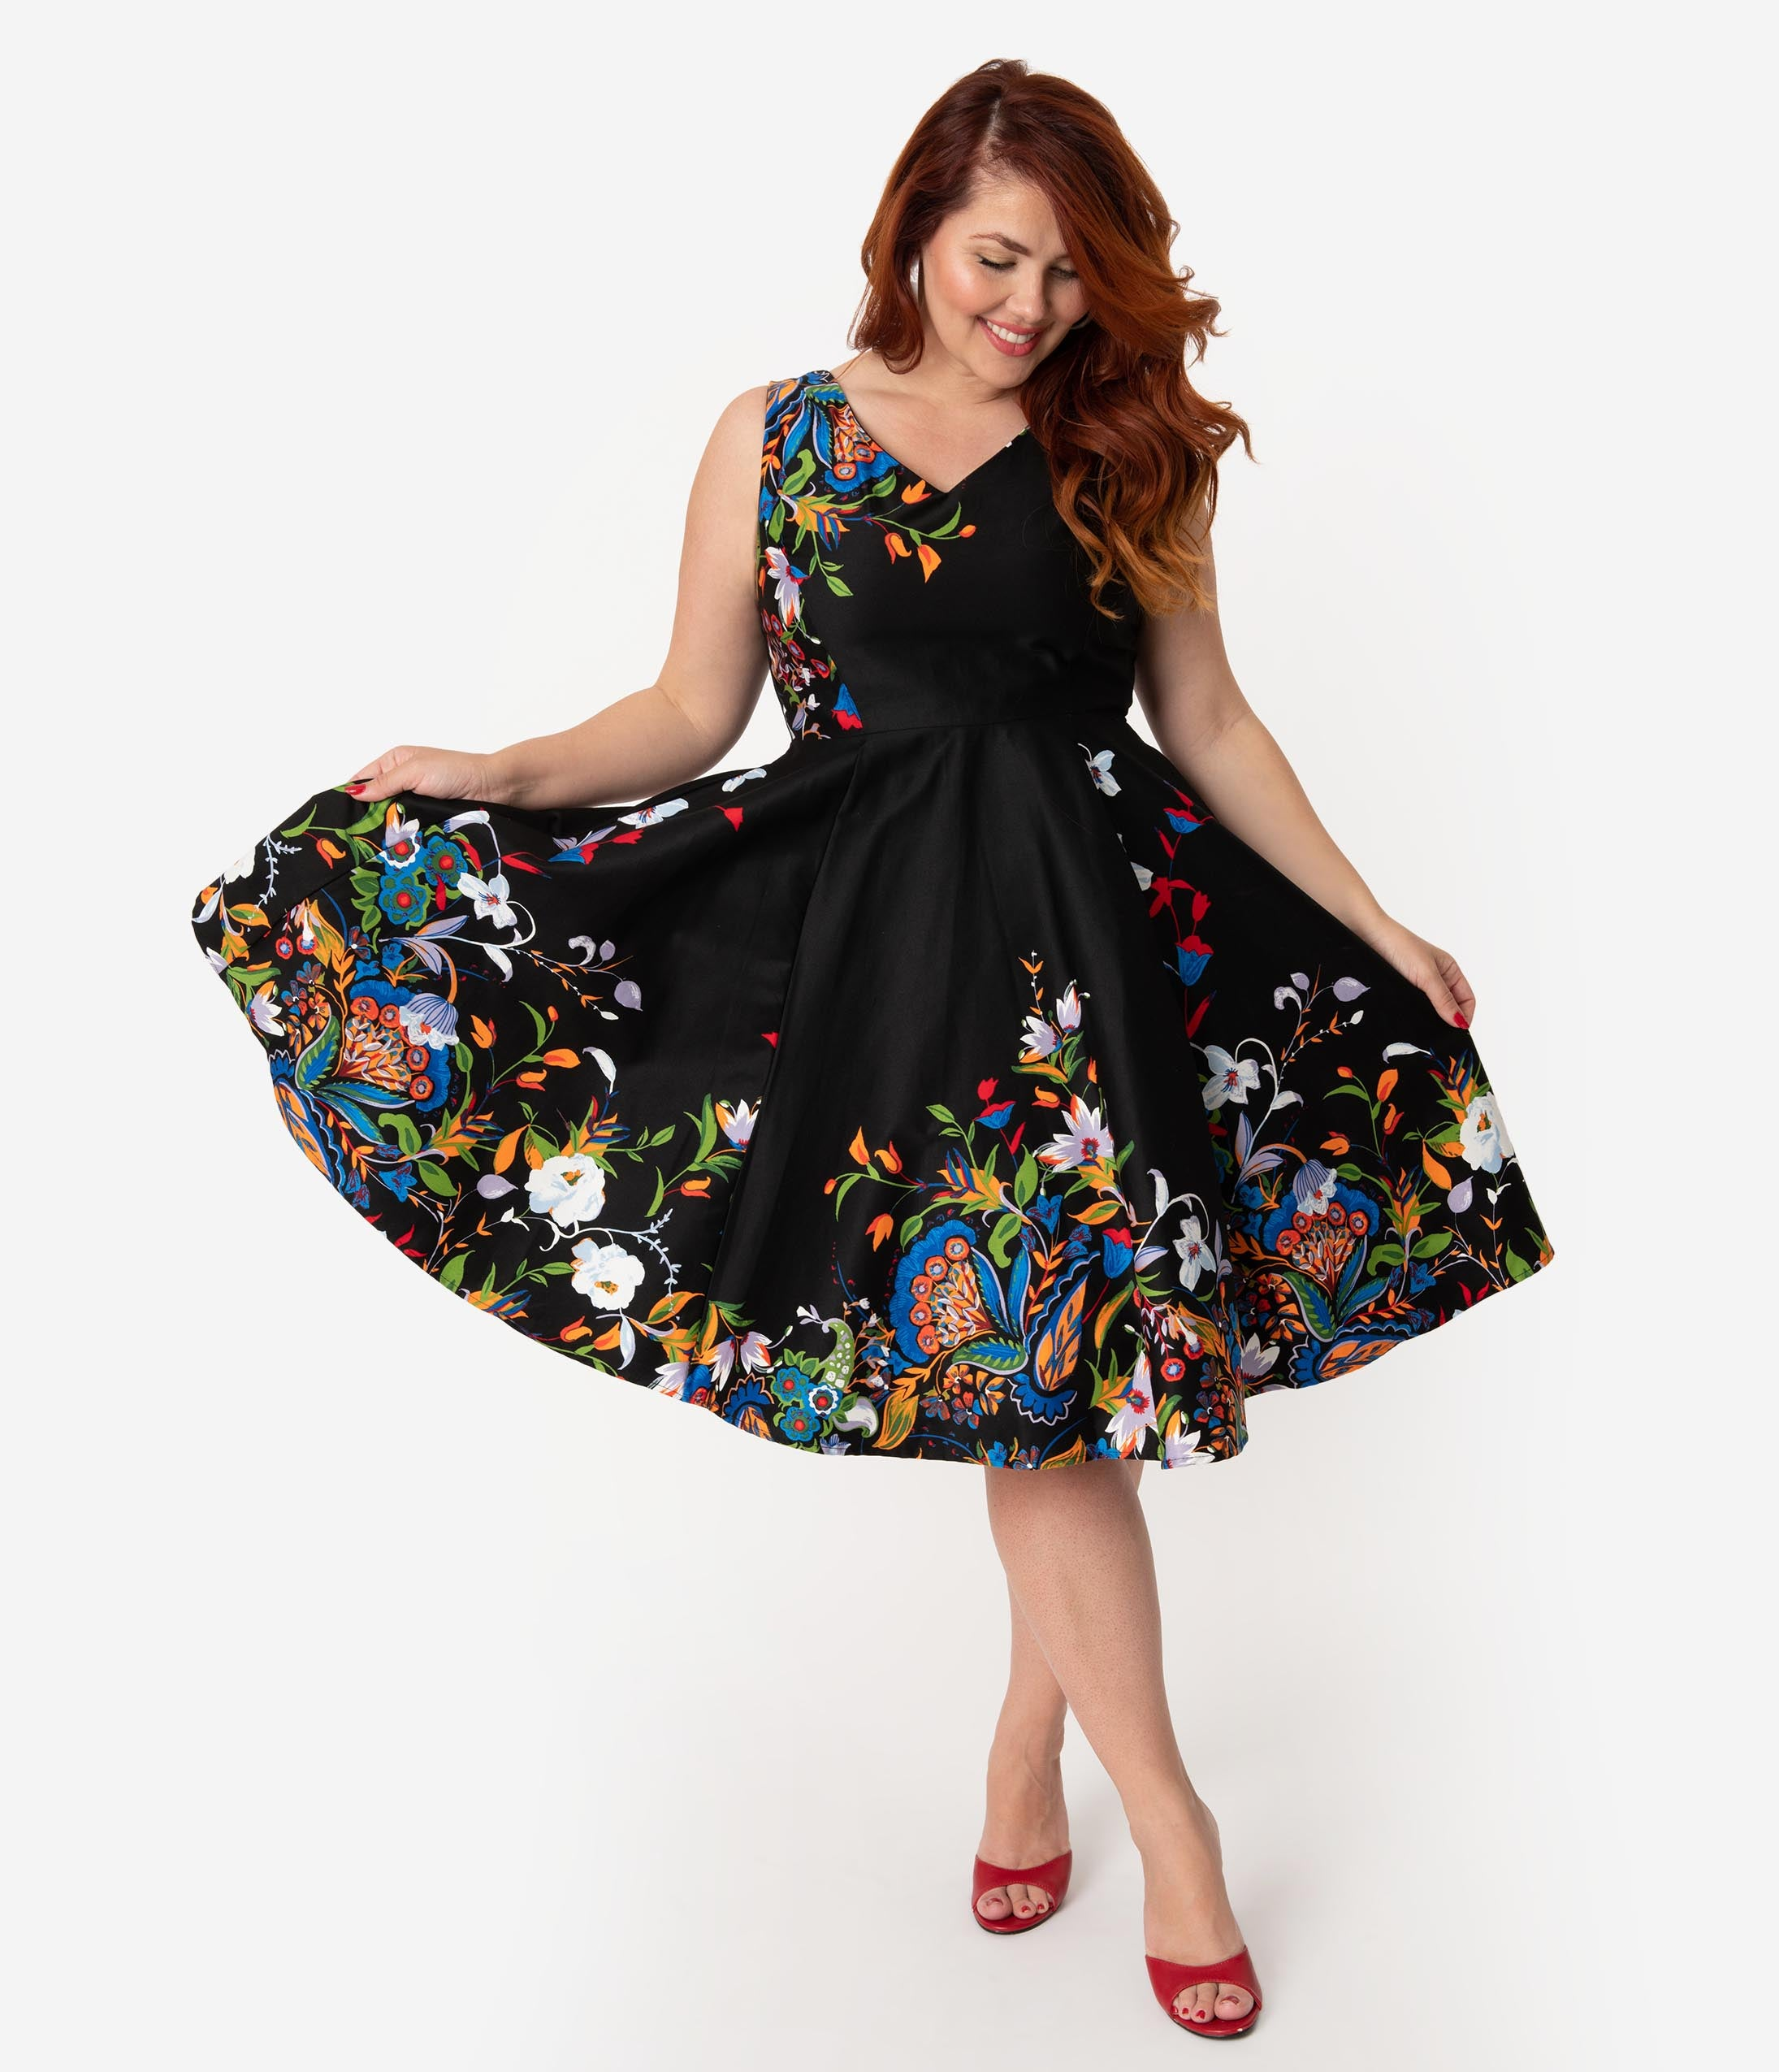 ce82b2c865c5 Plus Size Black Border Floral Print Cotton Swing Dress